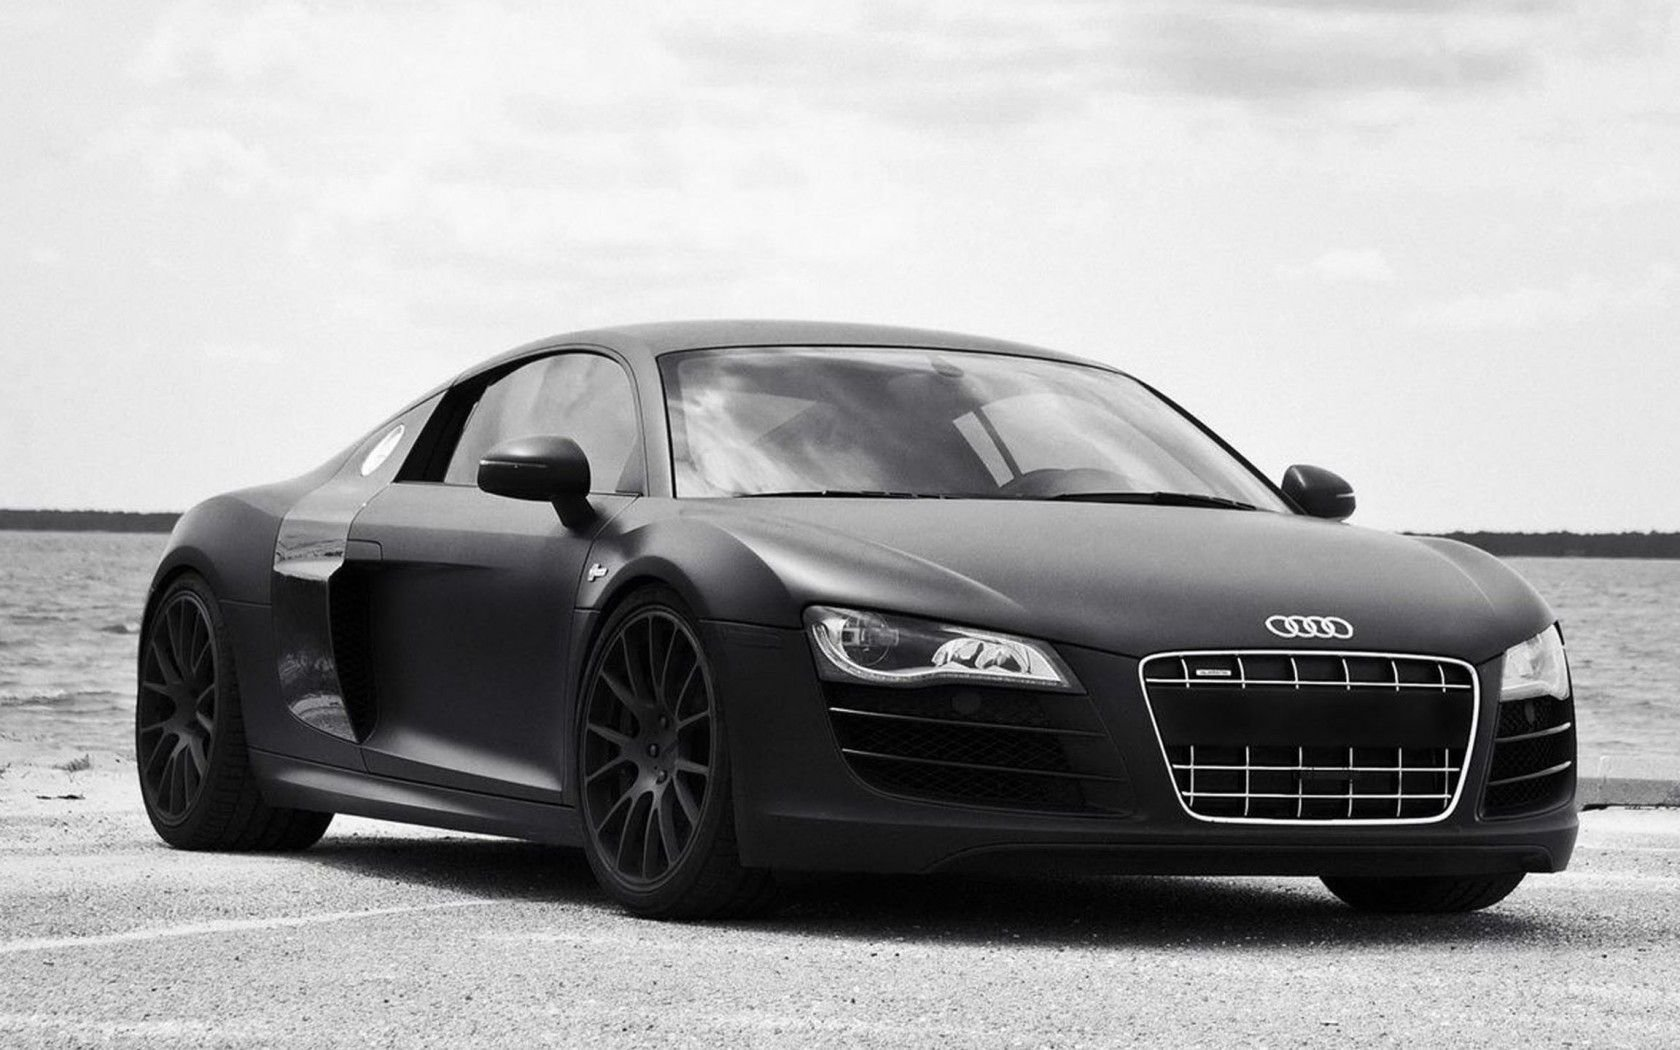 Latest Audi R8 2016 Black Full Overview Picture Cars Free Download